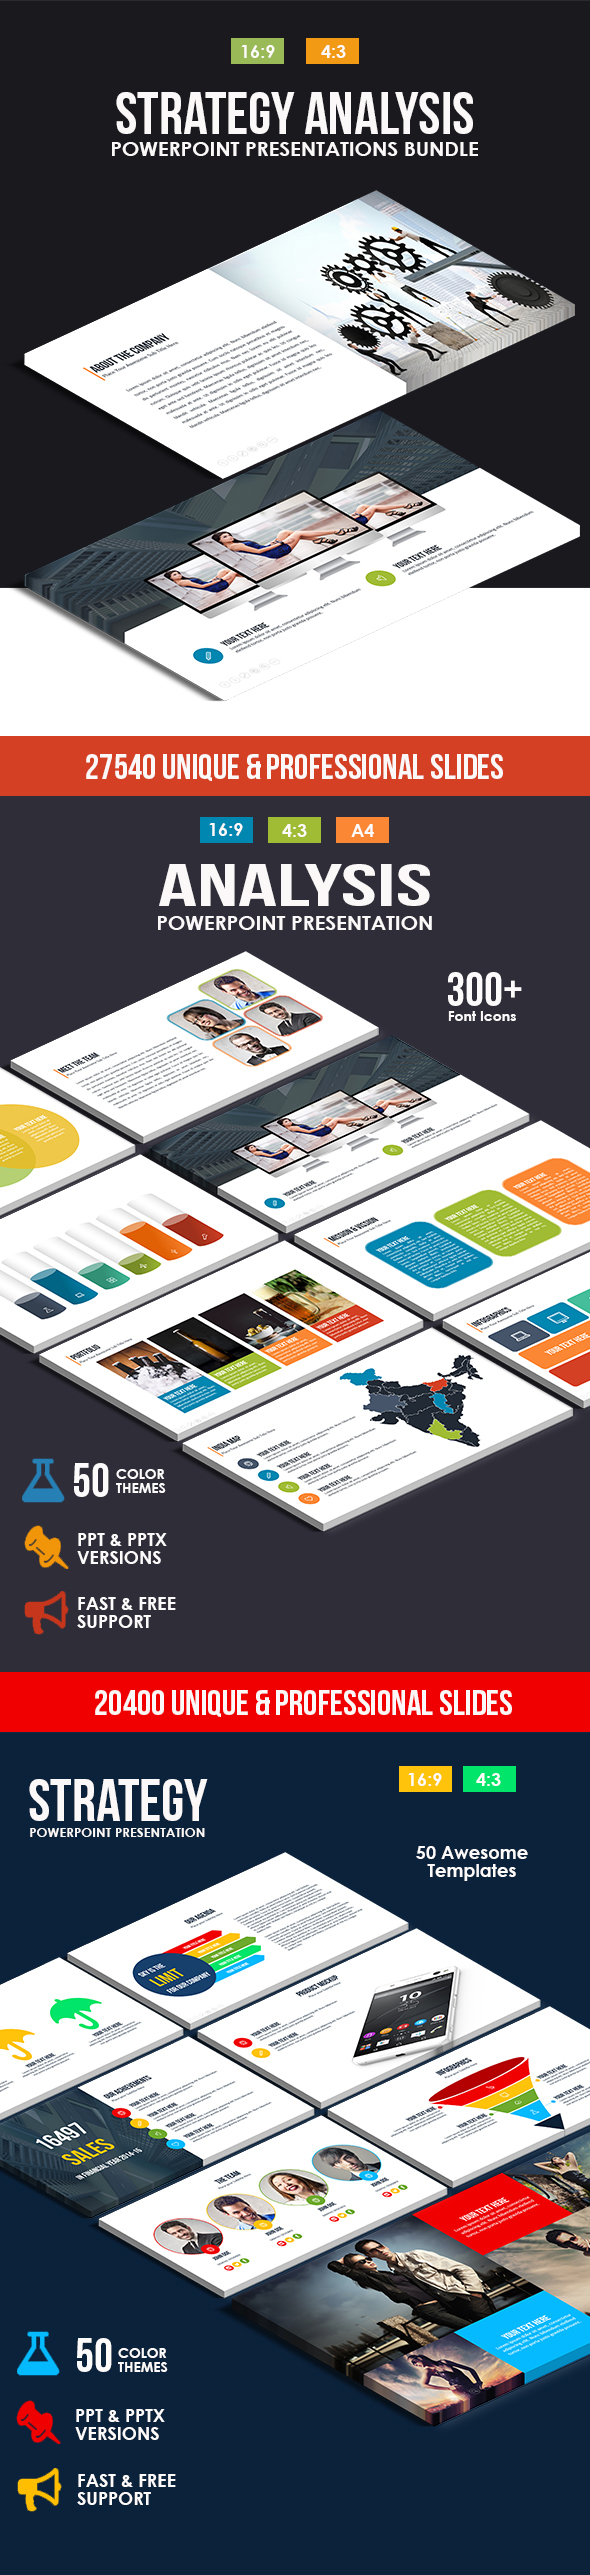 Strategy Analysis Powerpoint Bundle - Business PowerPoint Templates